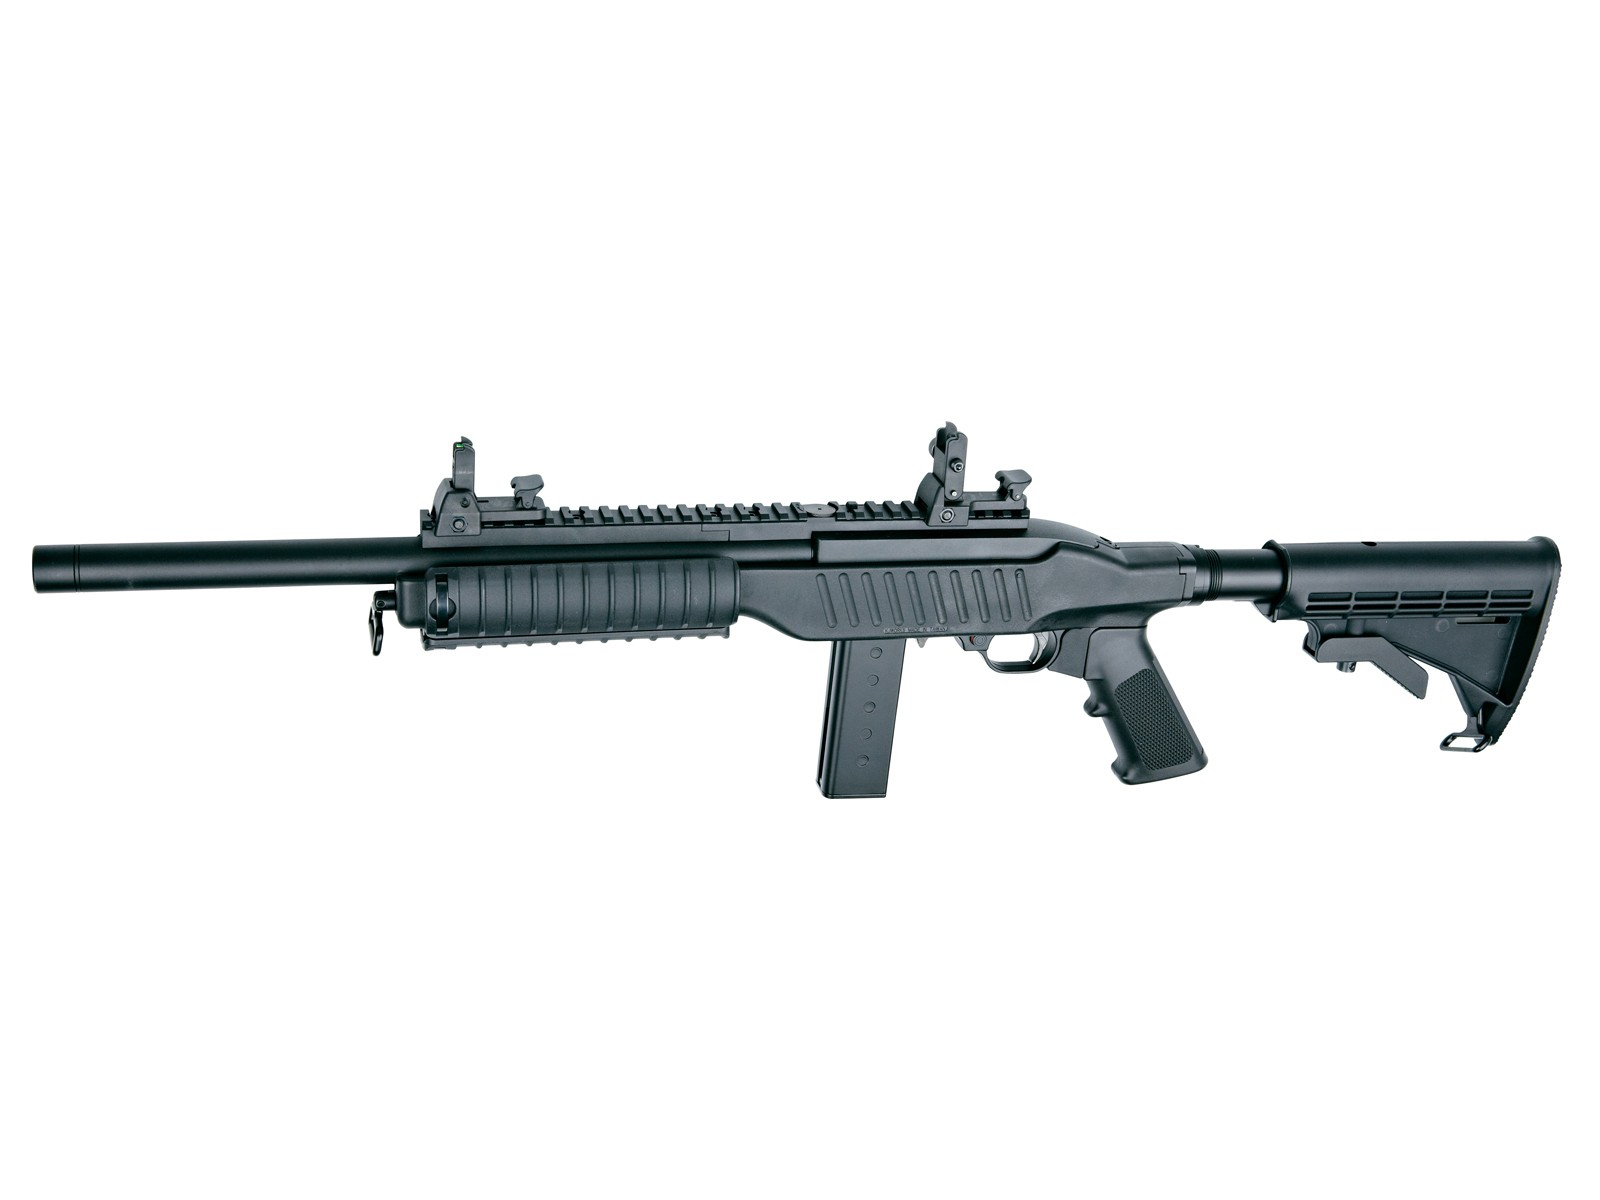 ASG Special Teams Carbine GBB